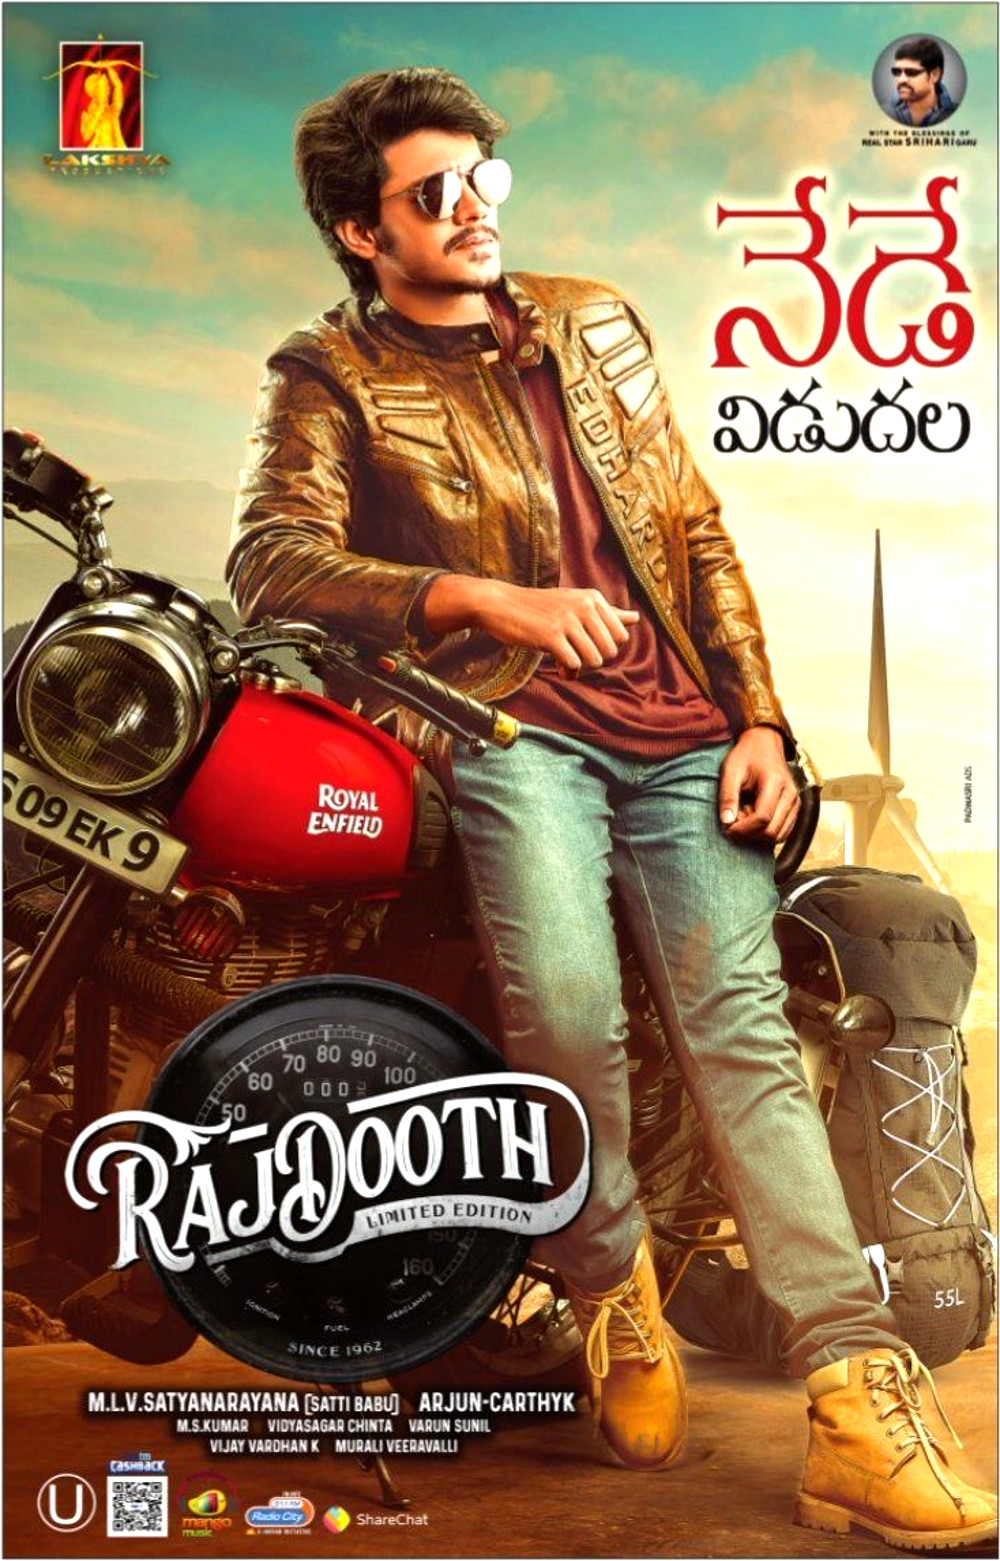 Actor Meghamsh Srihari Rajdooth Movie Release Today Posters